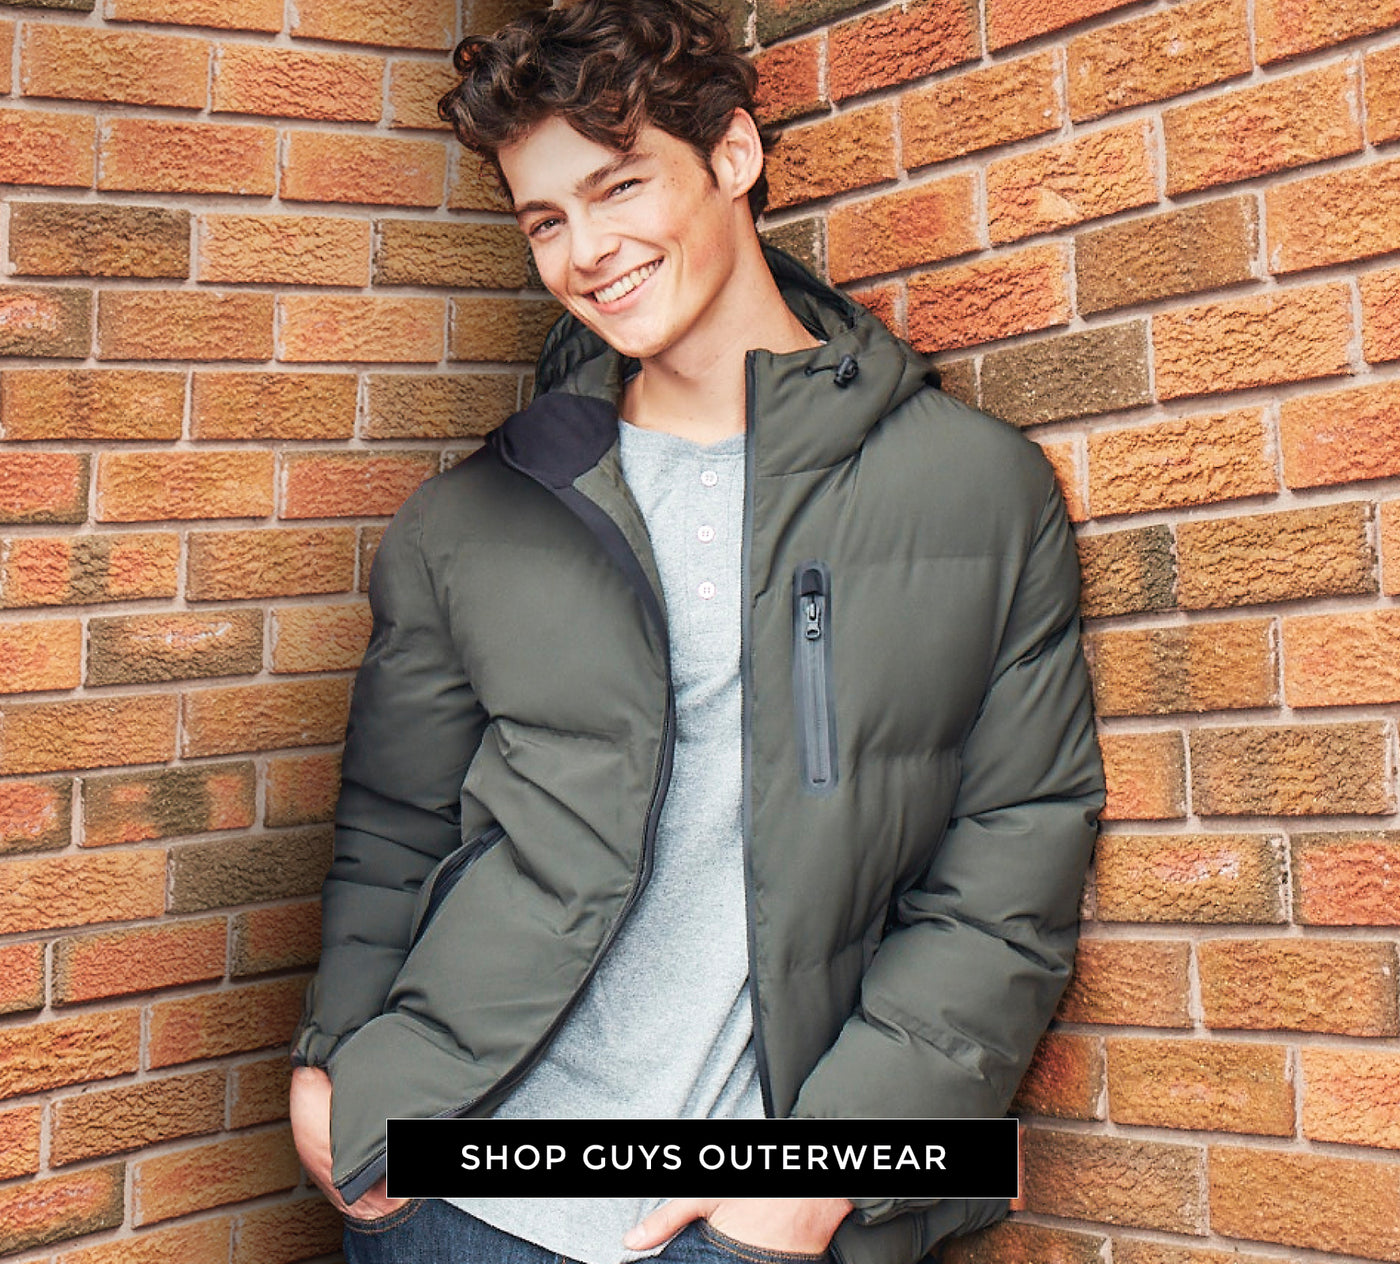 Shop Guys Outerwear